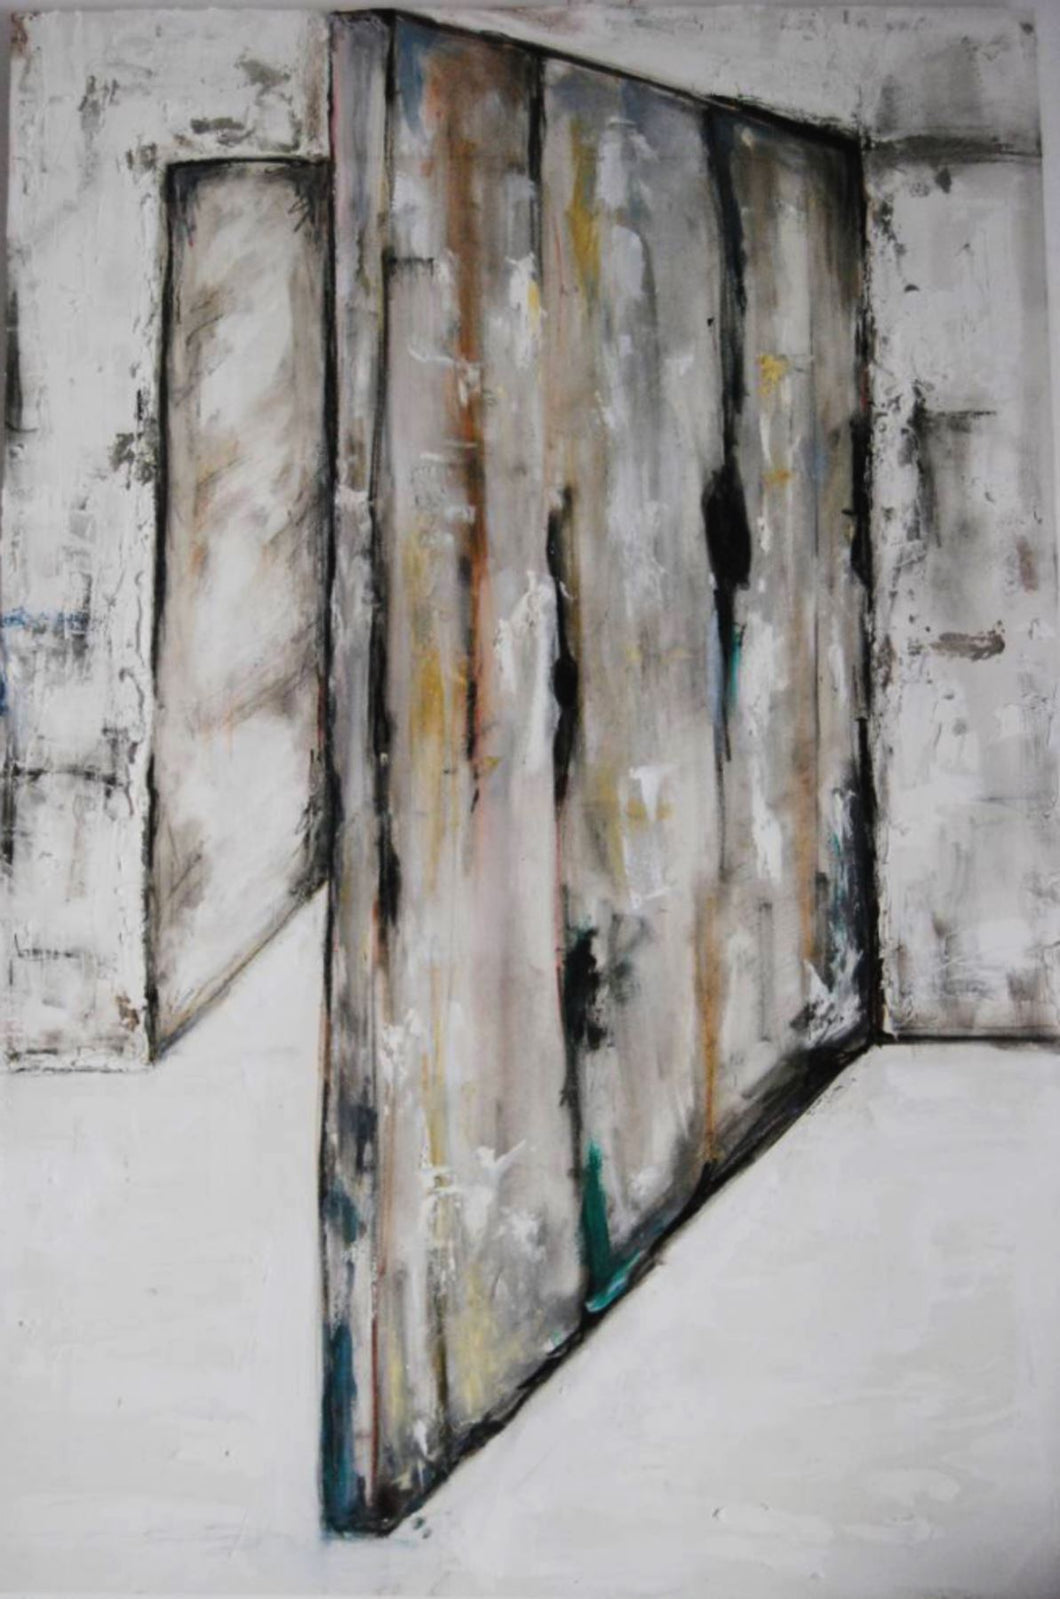 Wall 8 by Marilina Marchica, Painting at Art Acacia Gallery & Advisory